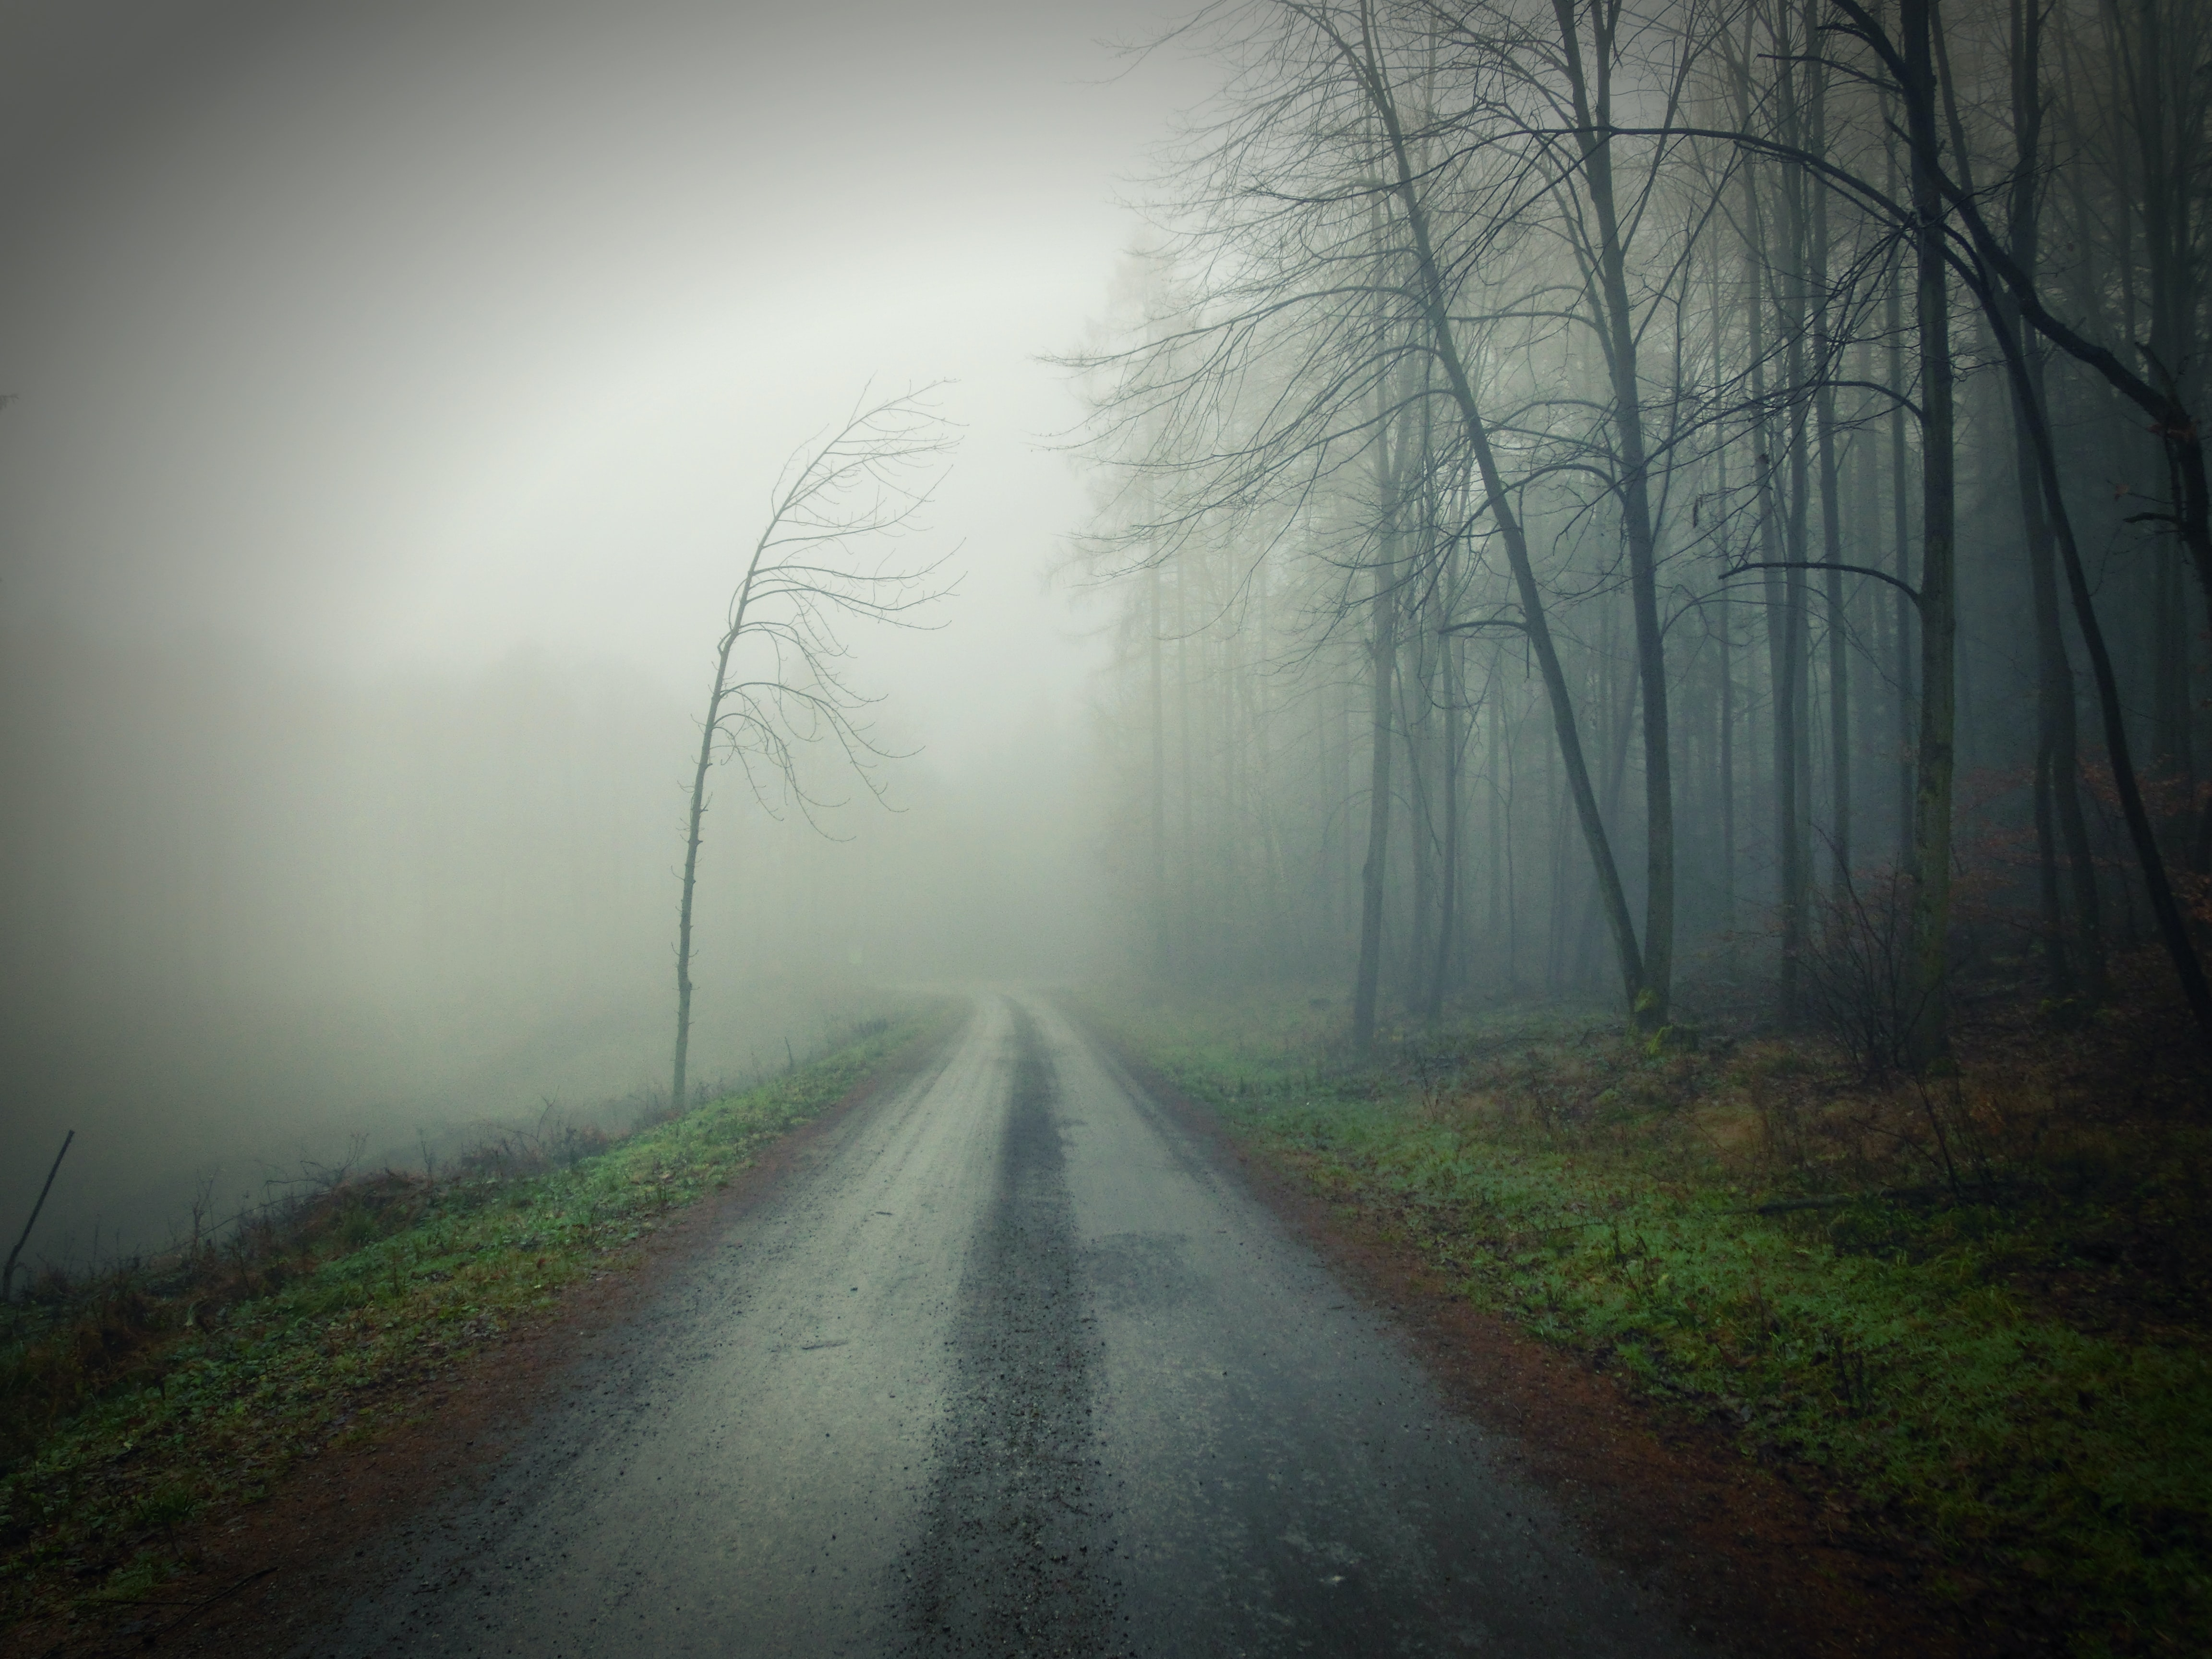 A moody road in a foggy, damp forest